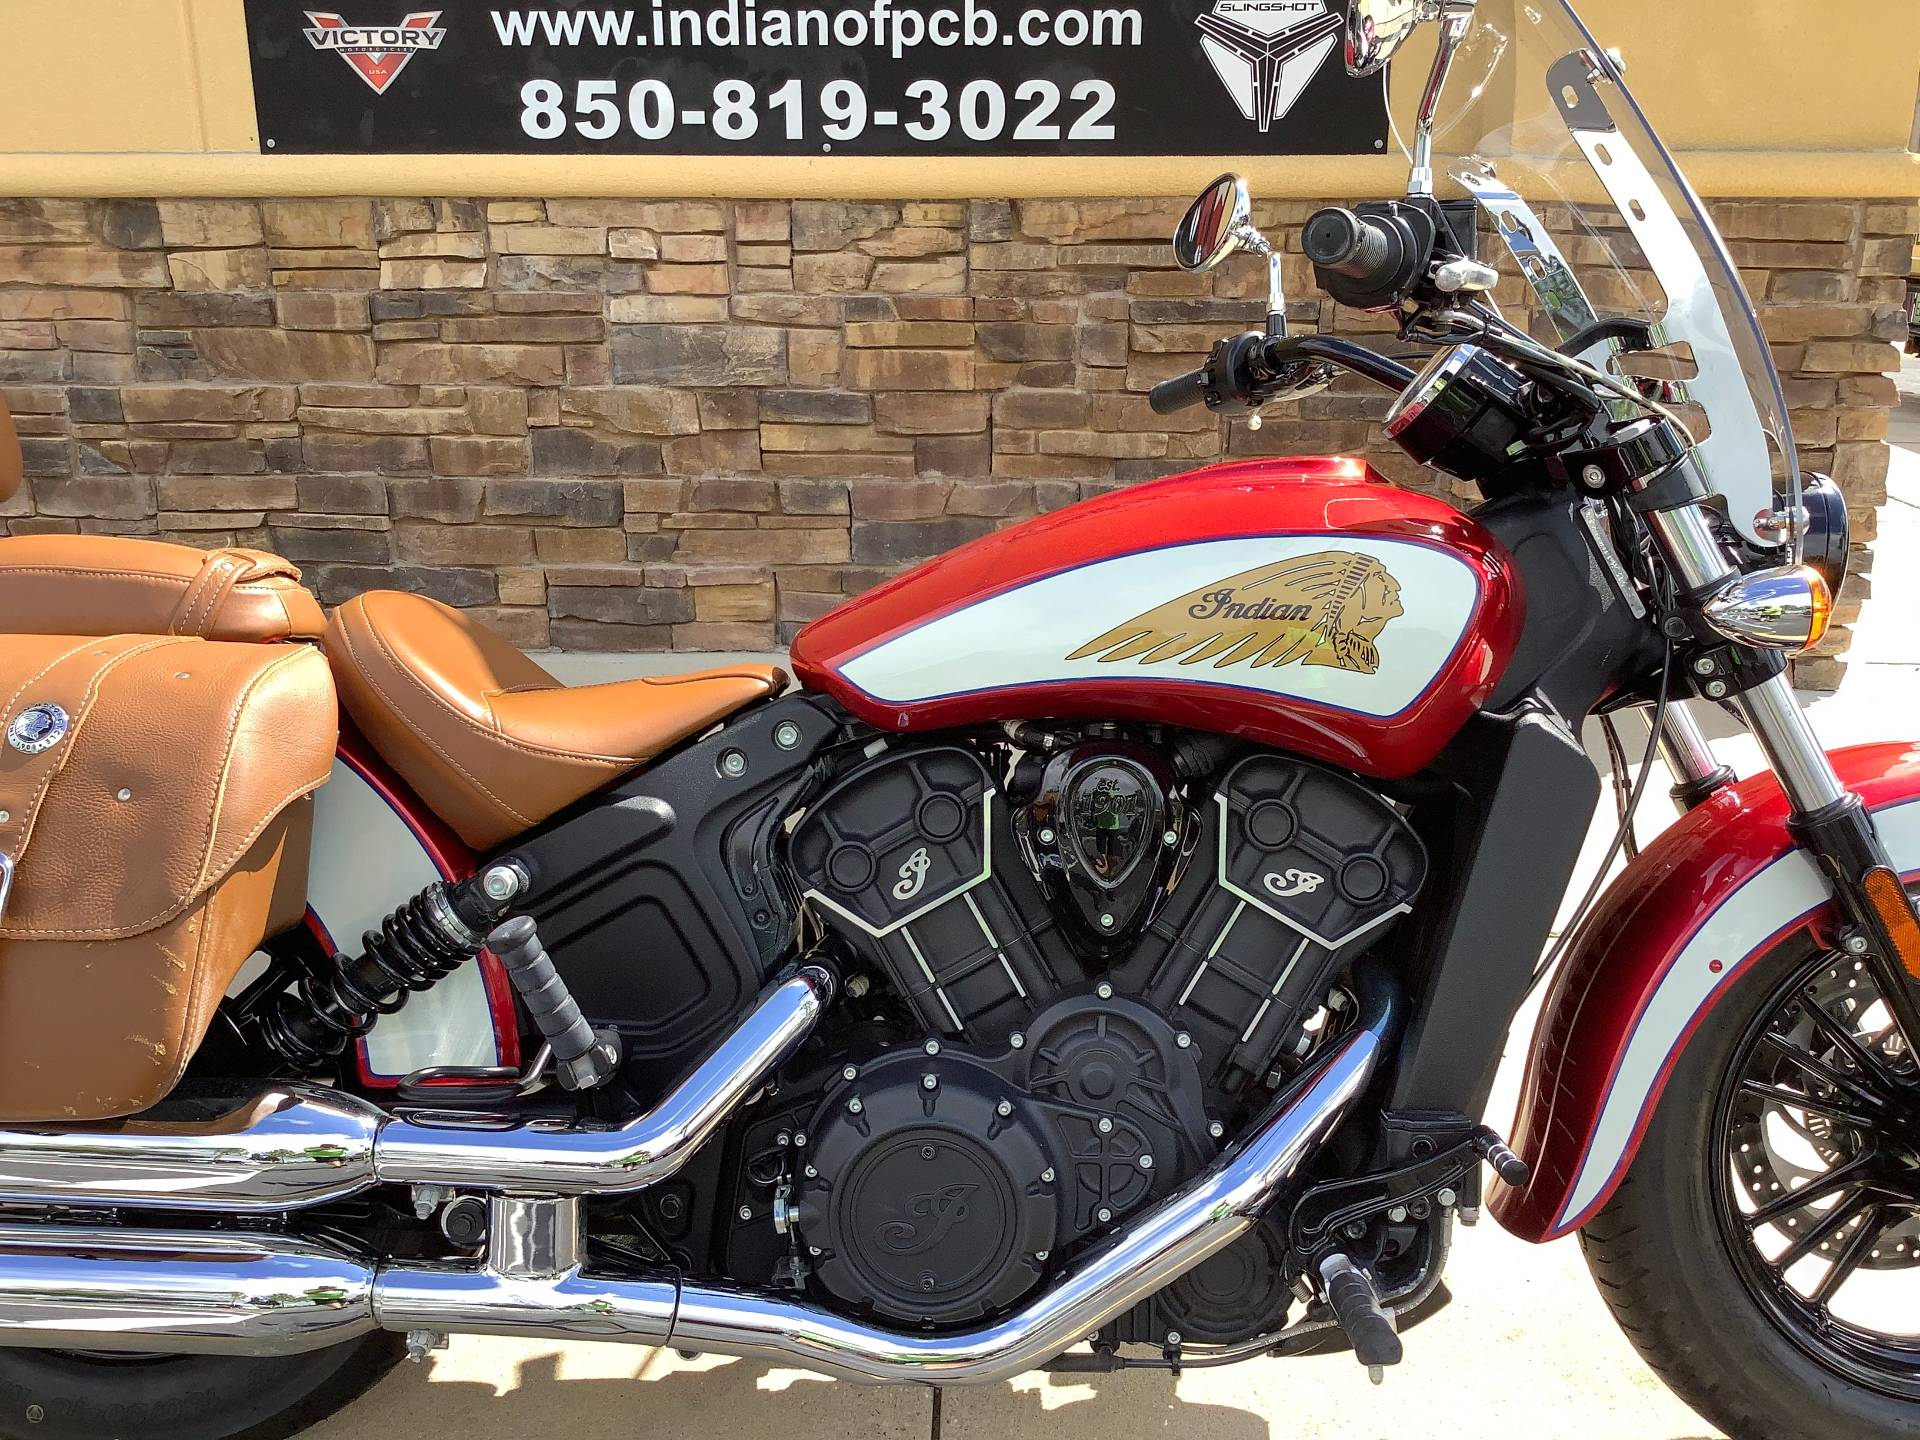 2019 Indian SCOUT SIXTY ICON in Panama City Beach, Florida - Photo 4